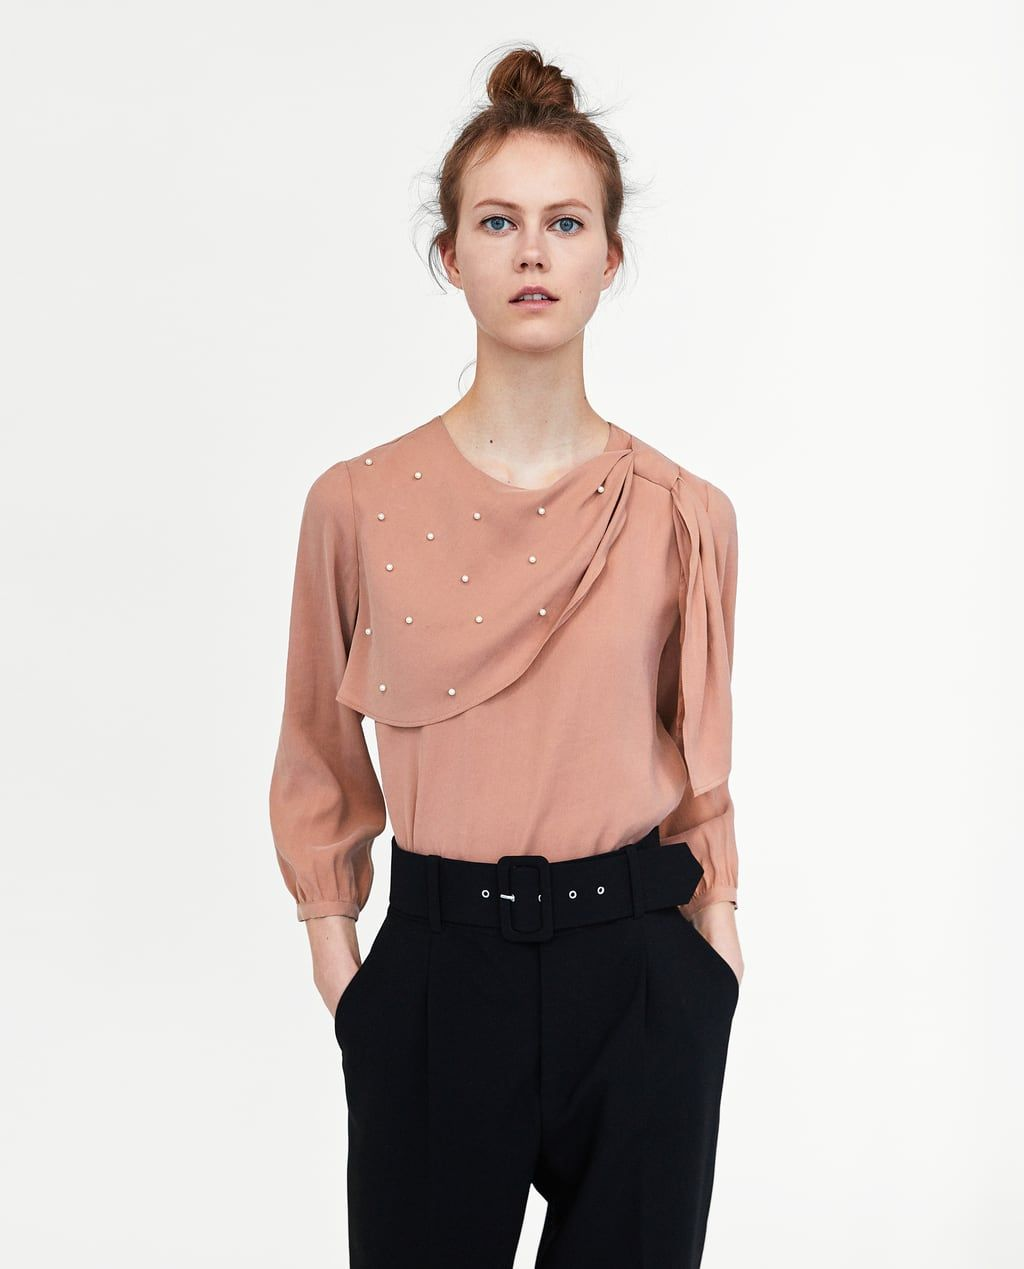 d20915b7 Women's Shirts & Blouses | New Collection Online | ZARA United States